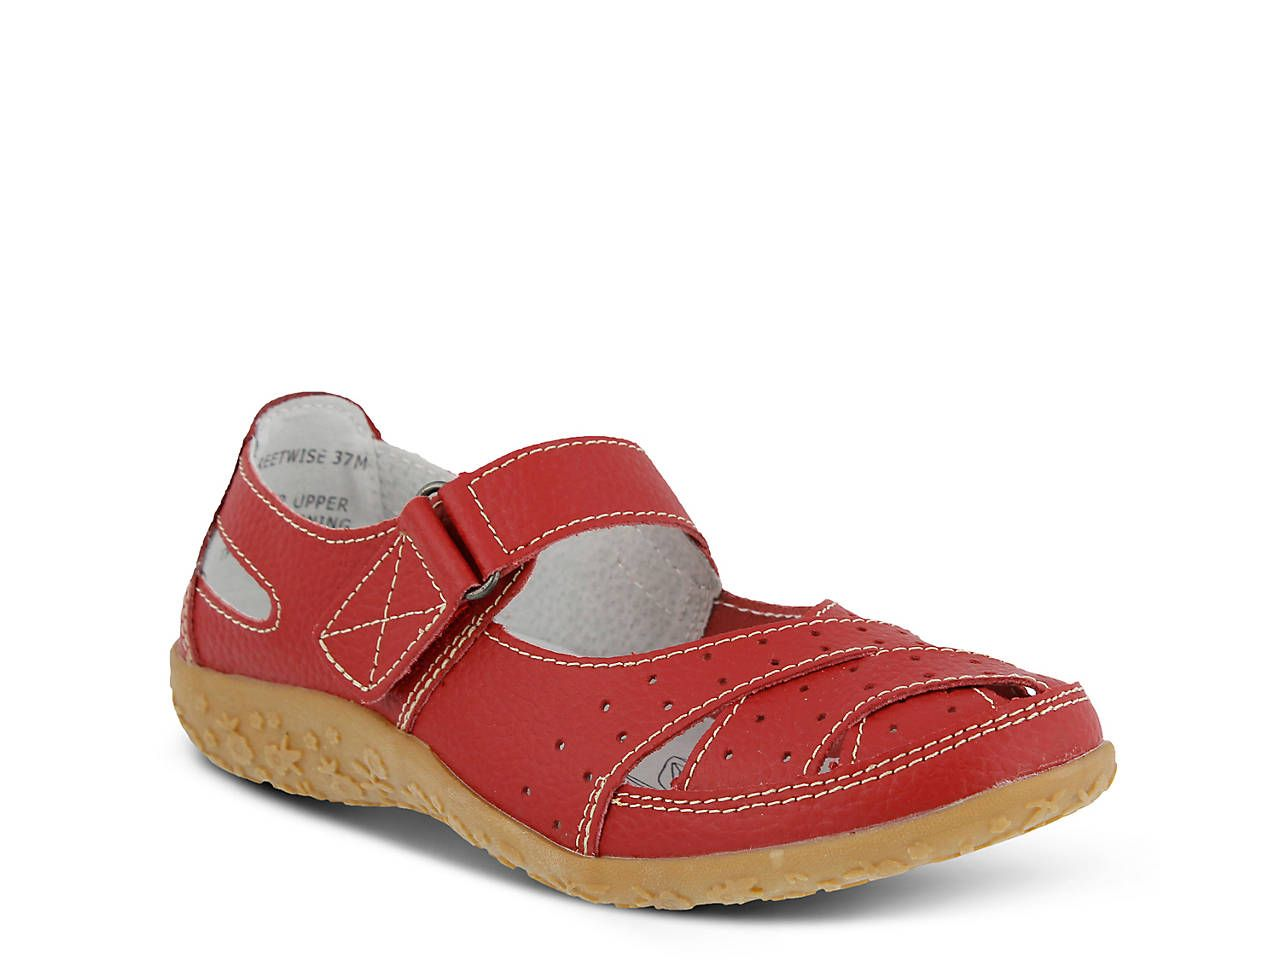 Leather shoes woman, Spring step shoes